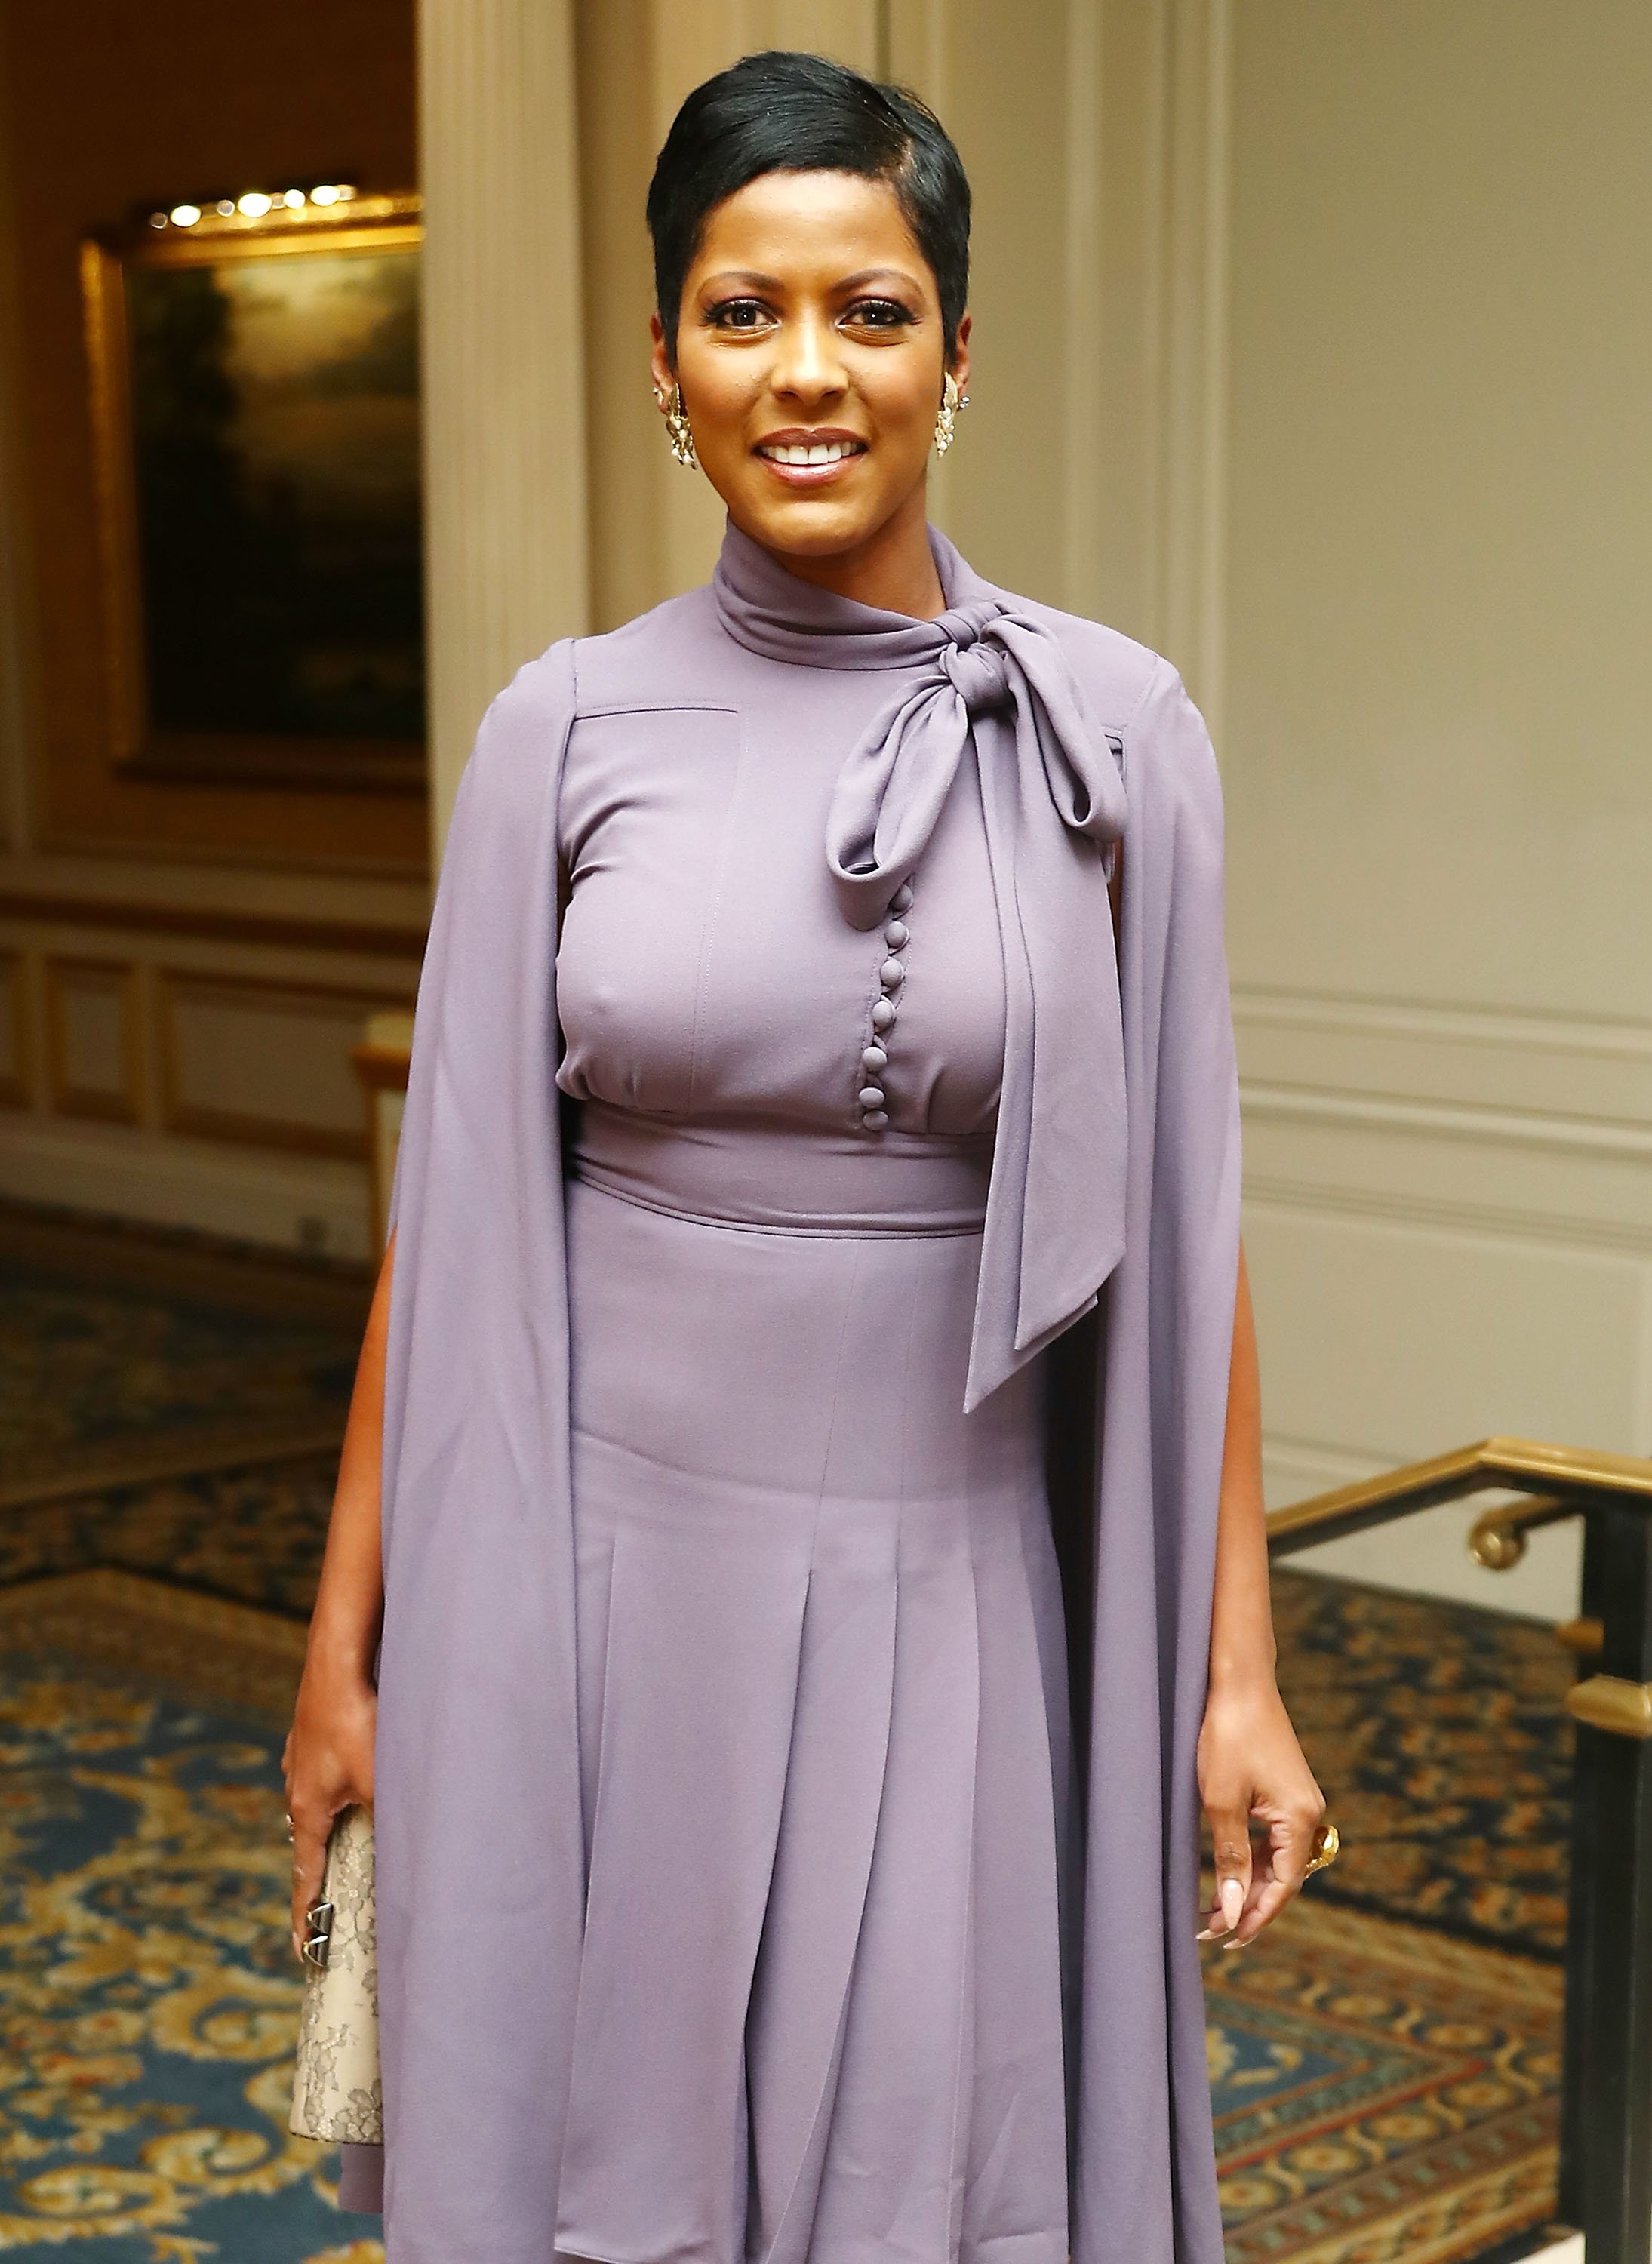 Tamron Hall attends the Moving Families Forward gala in New York City on October 23, 2017 | Photo: Getty Images